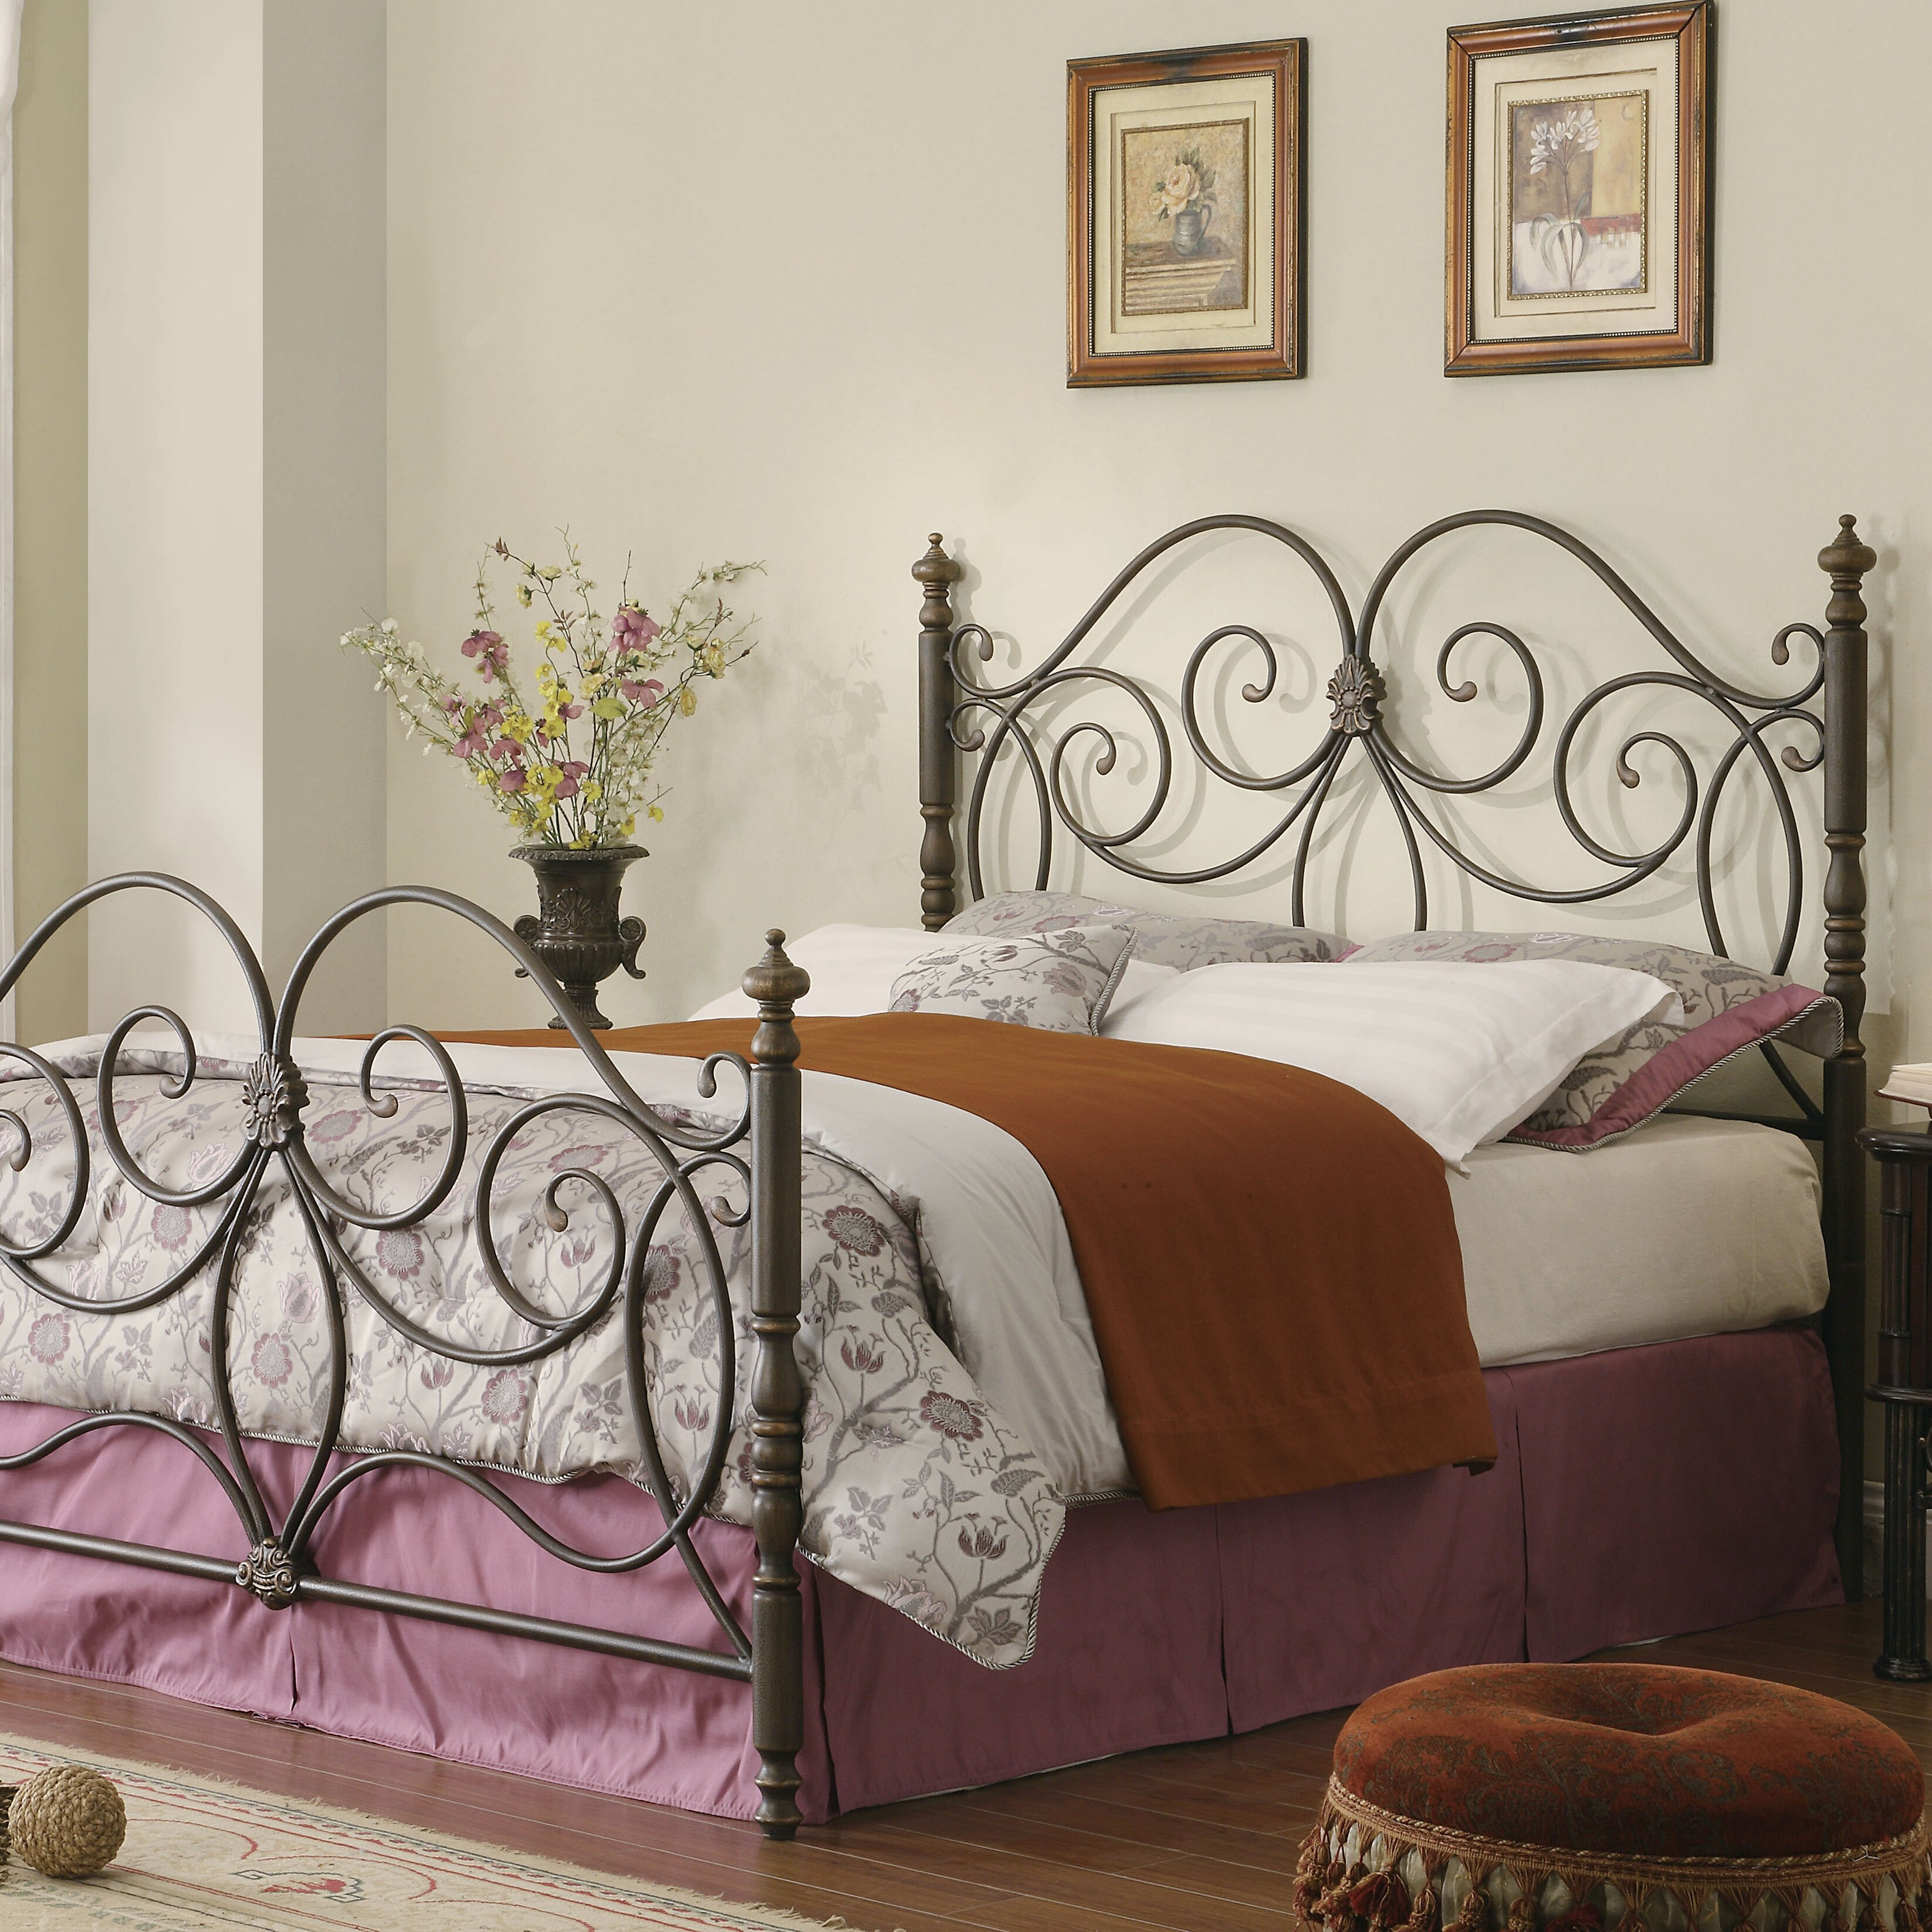 Metal headboard bed frame - Rosalind Wheeler Rankins Open Frame Headboard And Footboard